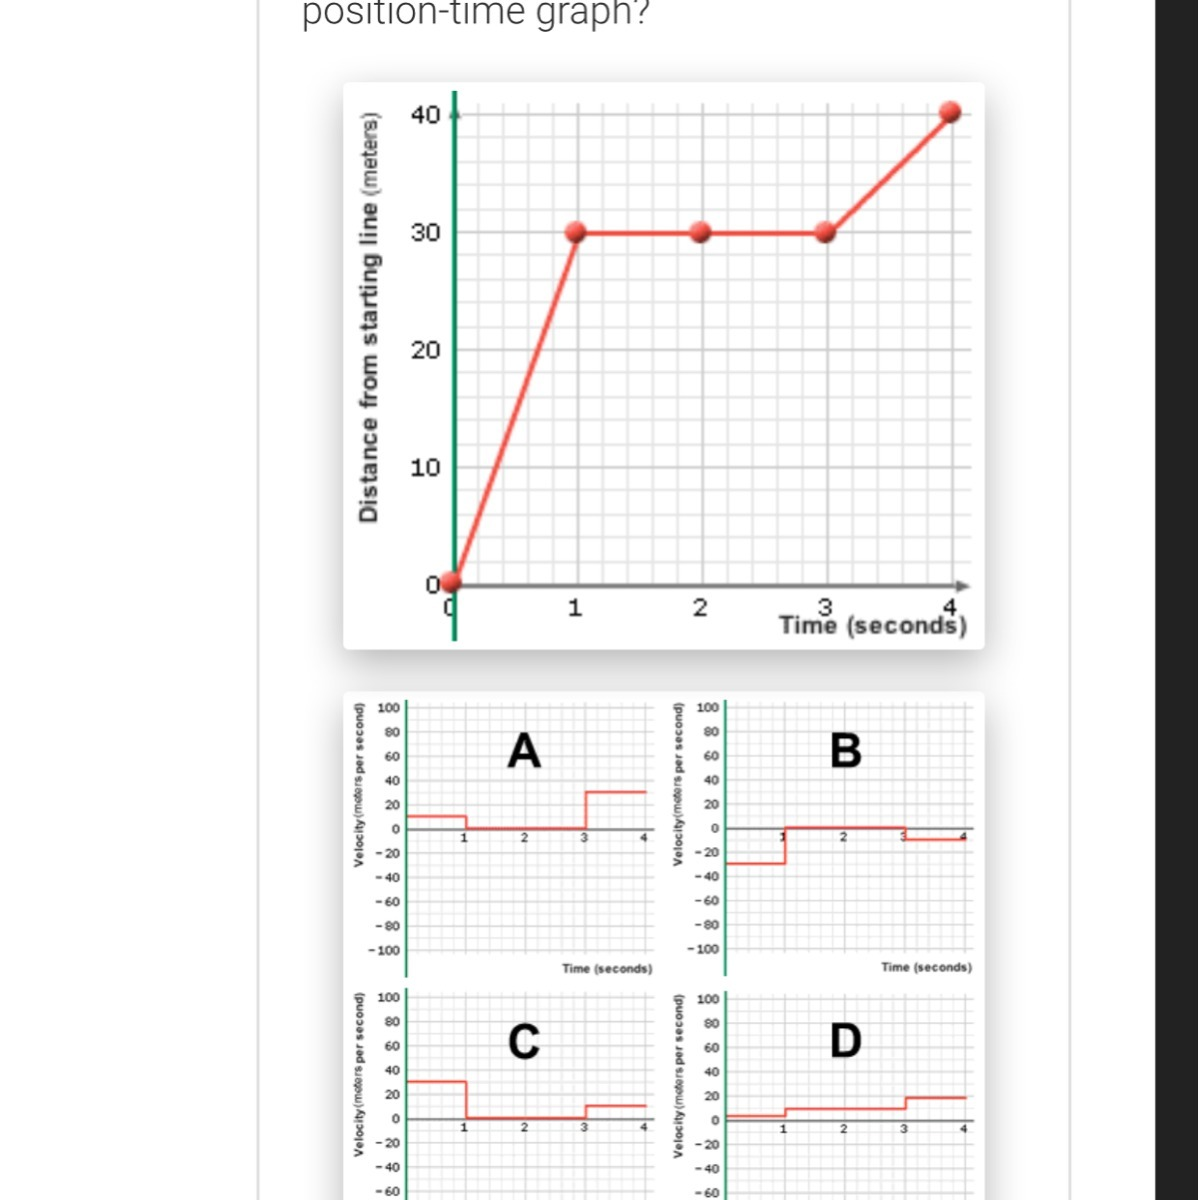 Which Velocity Time Graph Matches The Position Time Graph